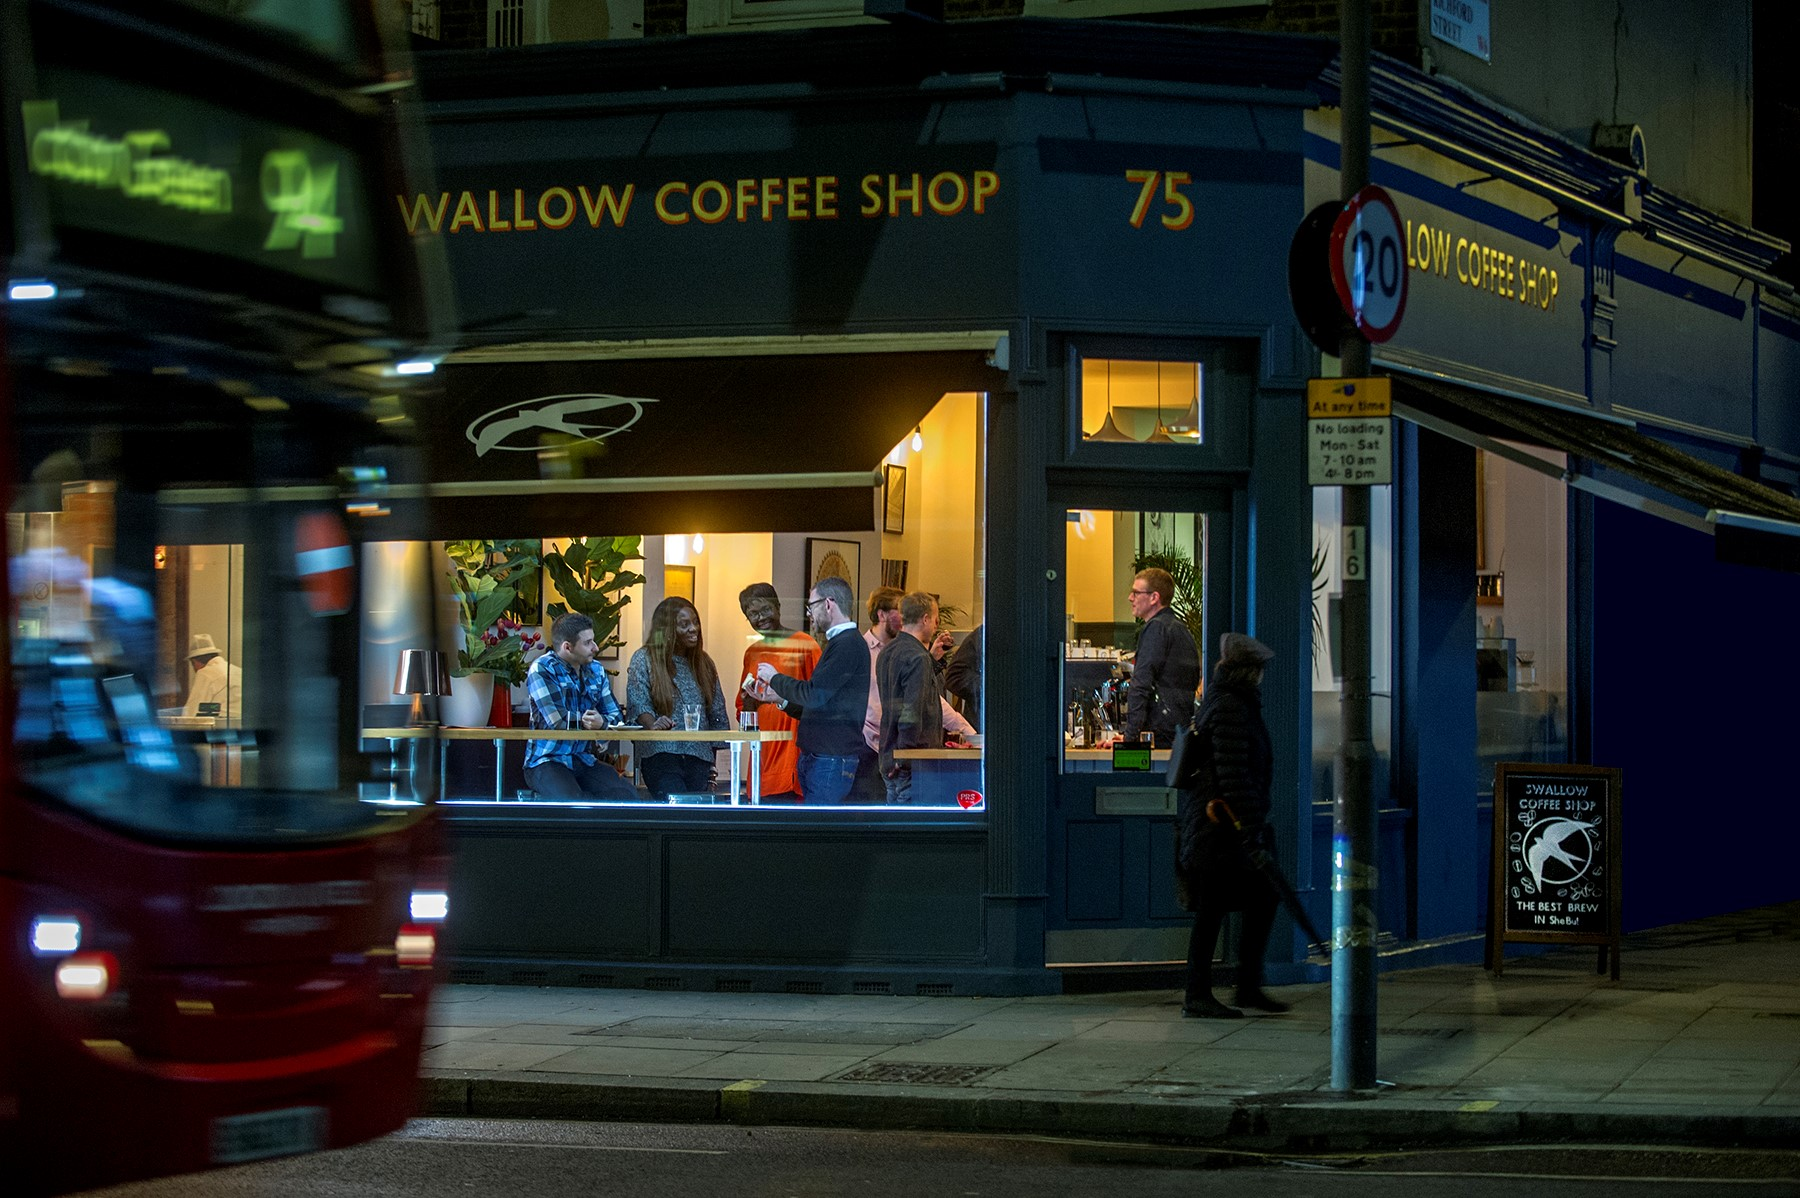 Photo by Swallow Coffee Shop